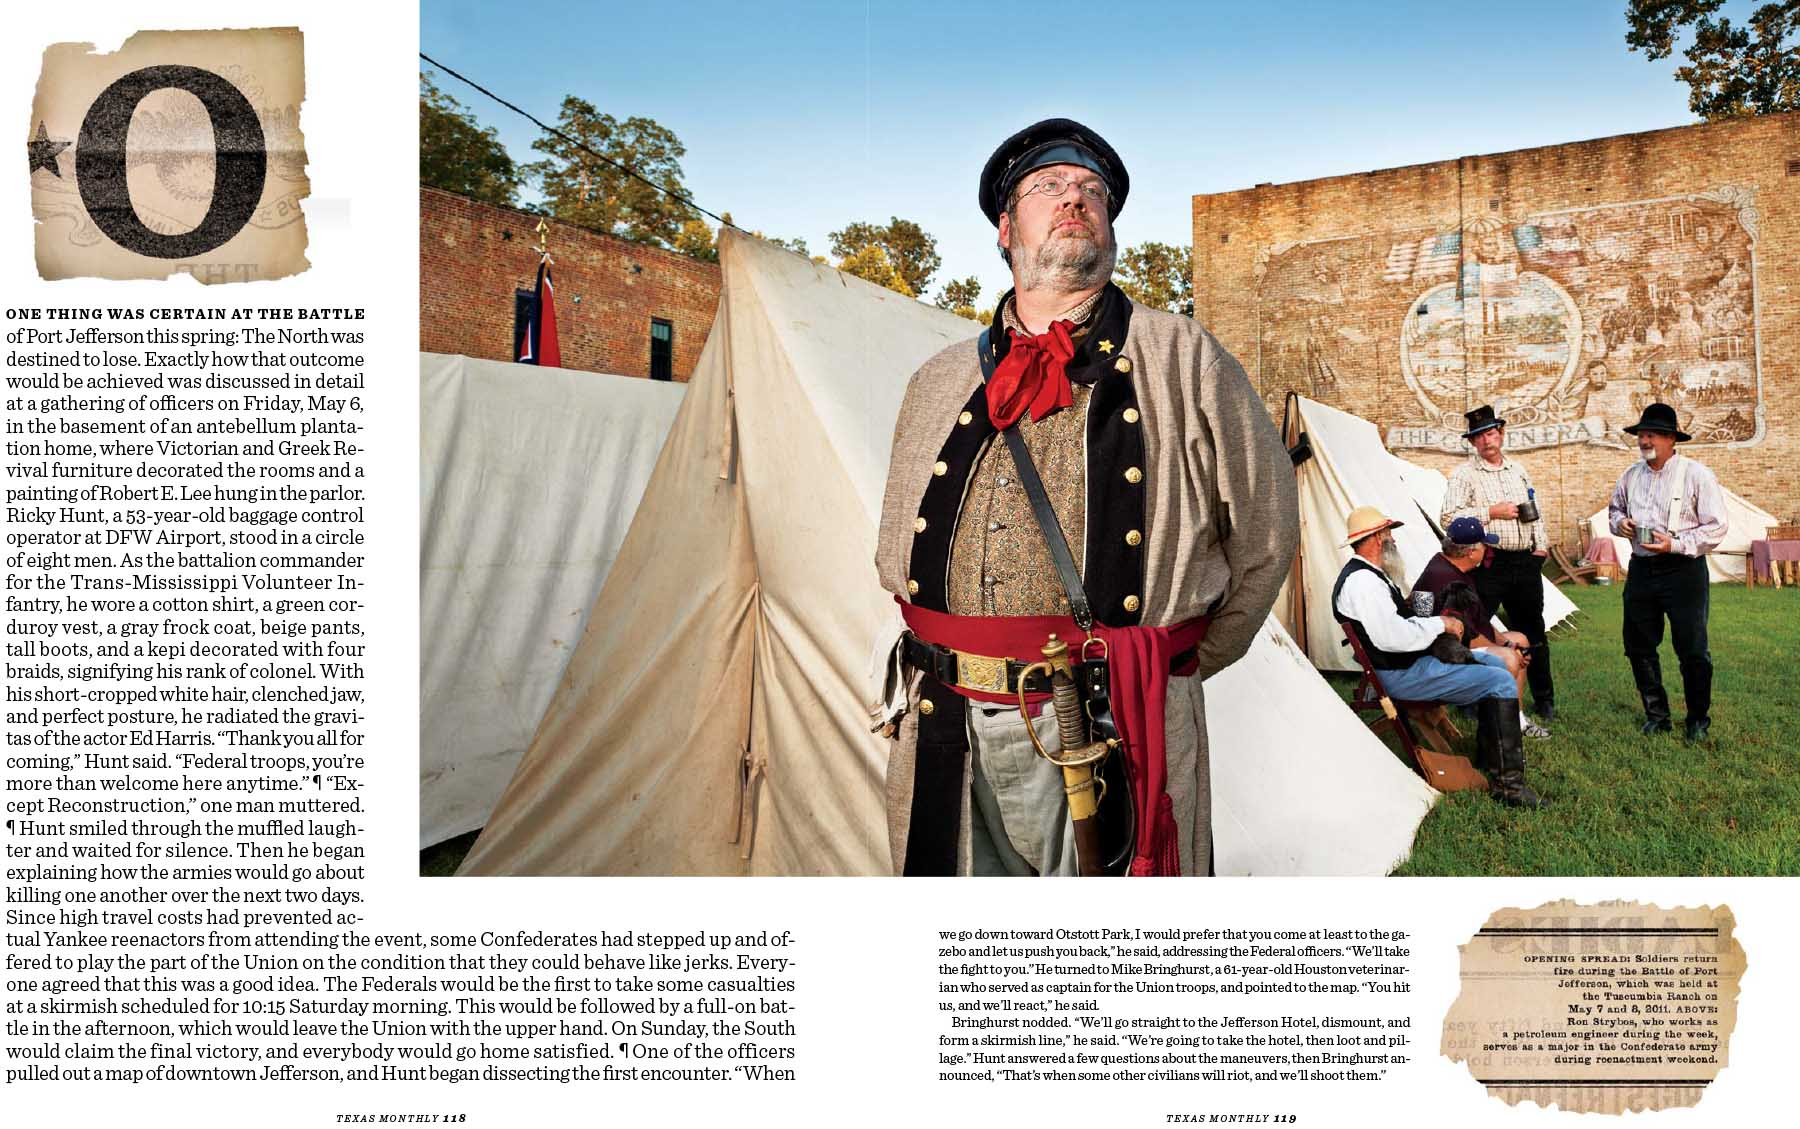 CIVIL WAR REENACTORS, TEXAS MONTHLY